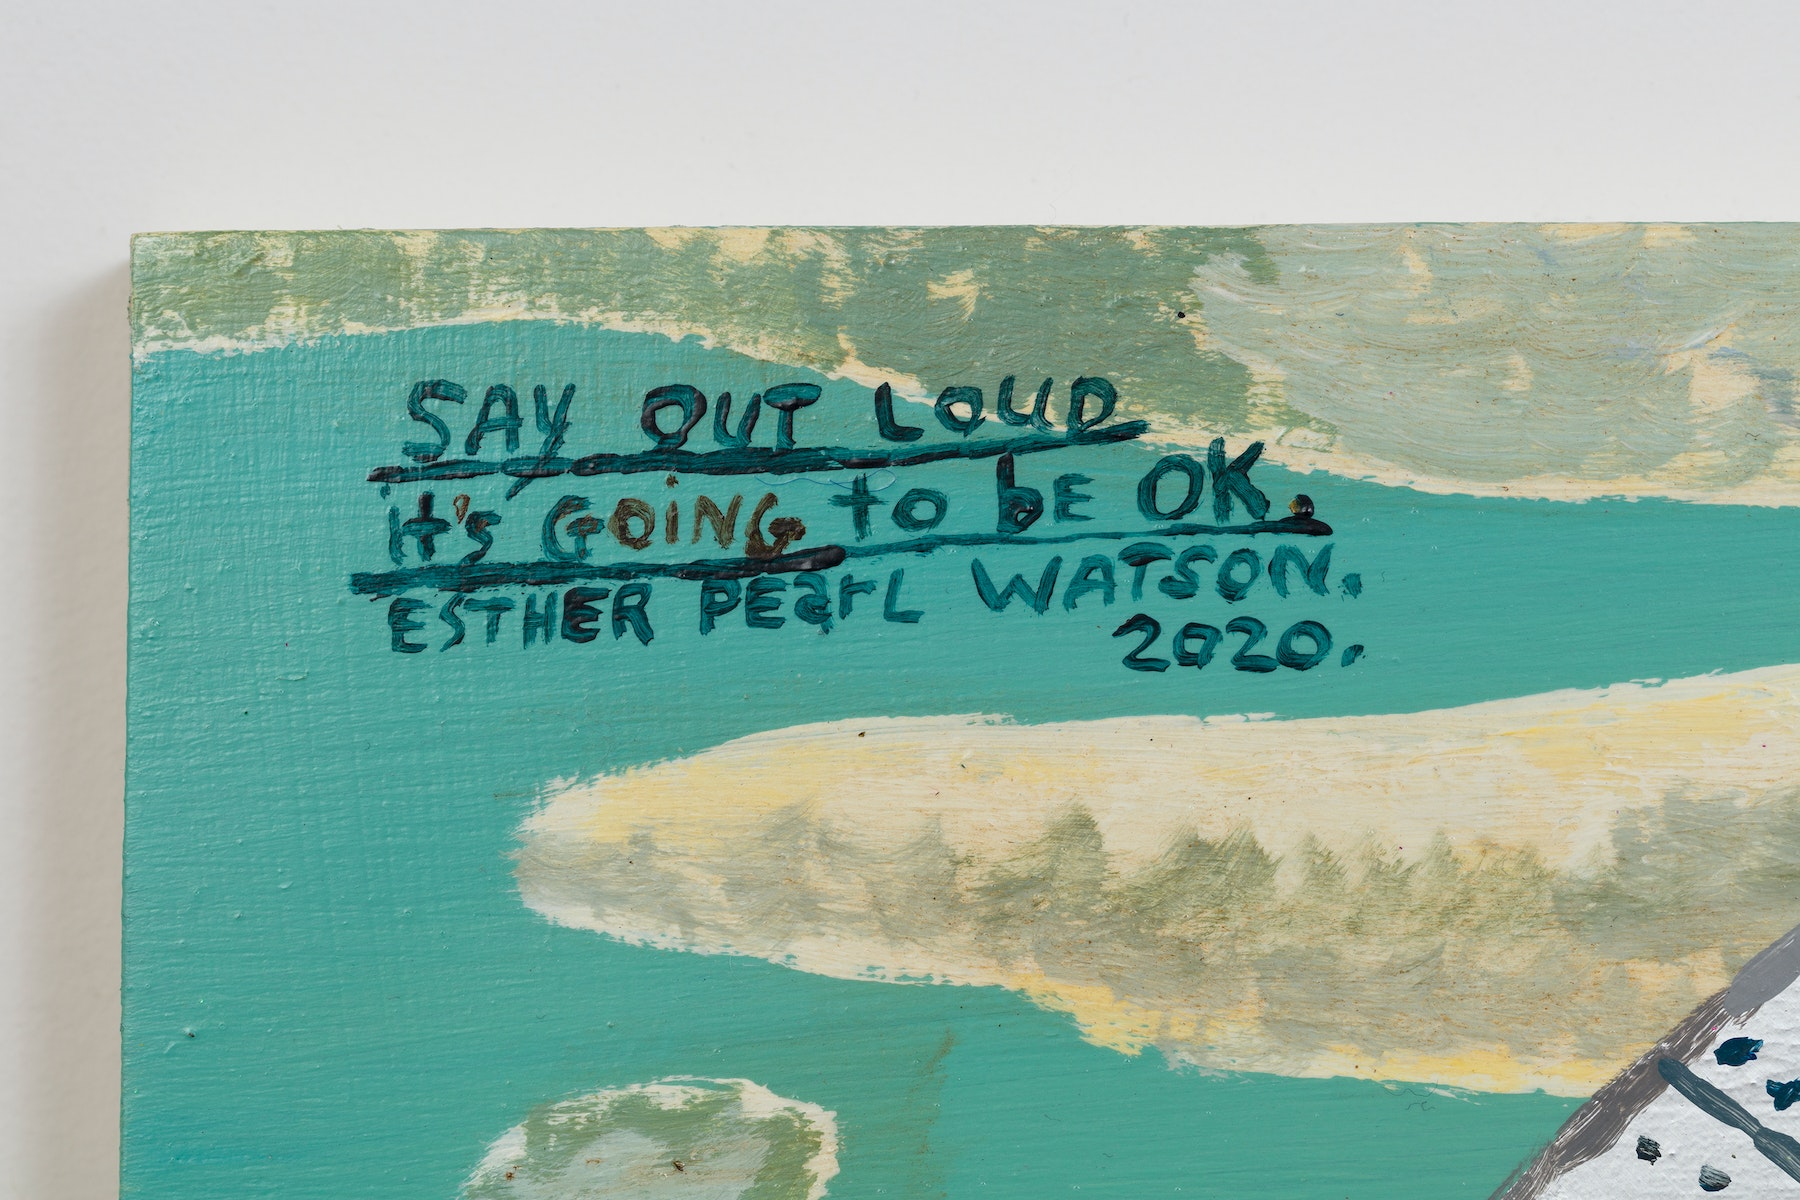 """Esther Pearl Watson """"Say Out Loud It's Going to be OK,"""" 2020 Acrylic, foil, foil paper, found mirror, graphite on panel 12 x 16"""" [HxW] (30.48 x 40.64 cm) Inventory #EPW215 Courtesy of the artist and Vielmetter Los Angeles Photo credit: Jeff McLane"""